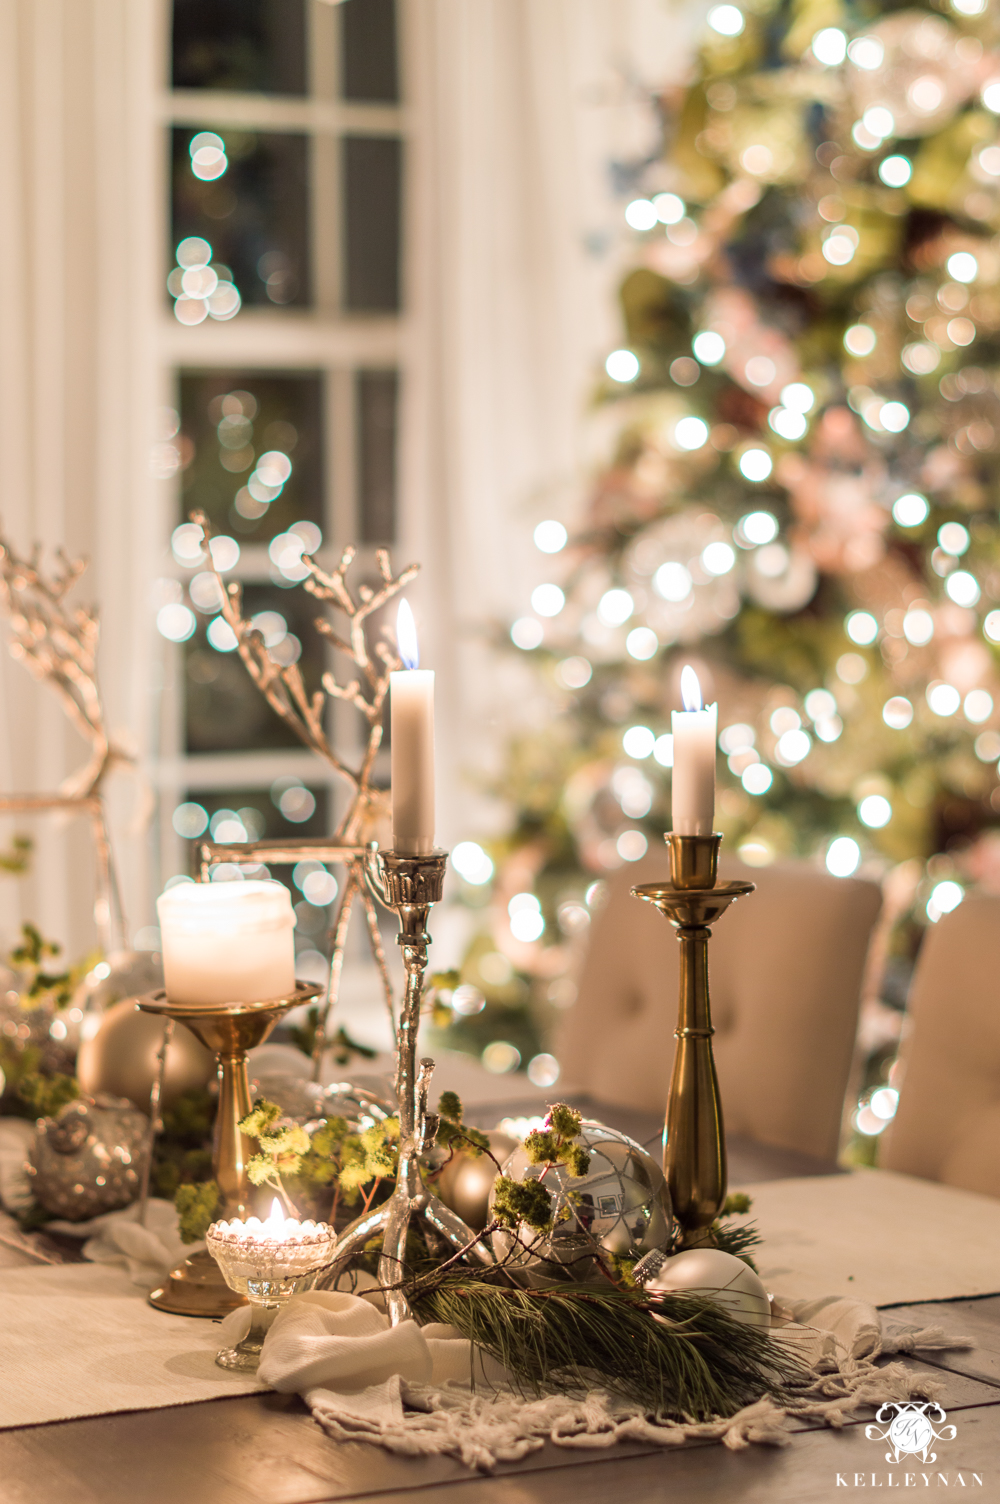 Christmas dining room centerpiece with candles